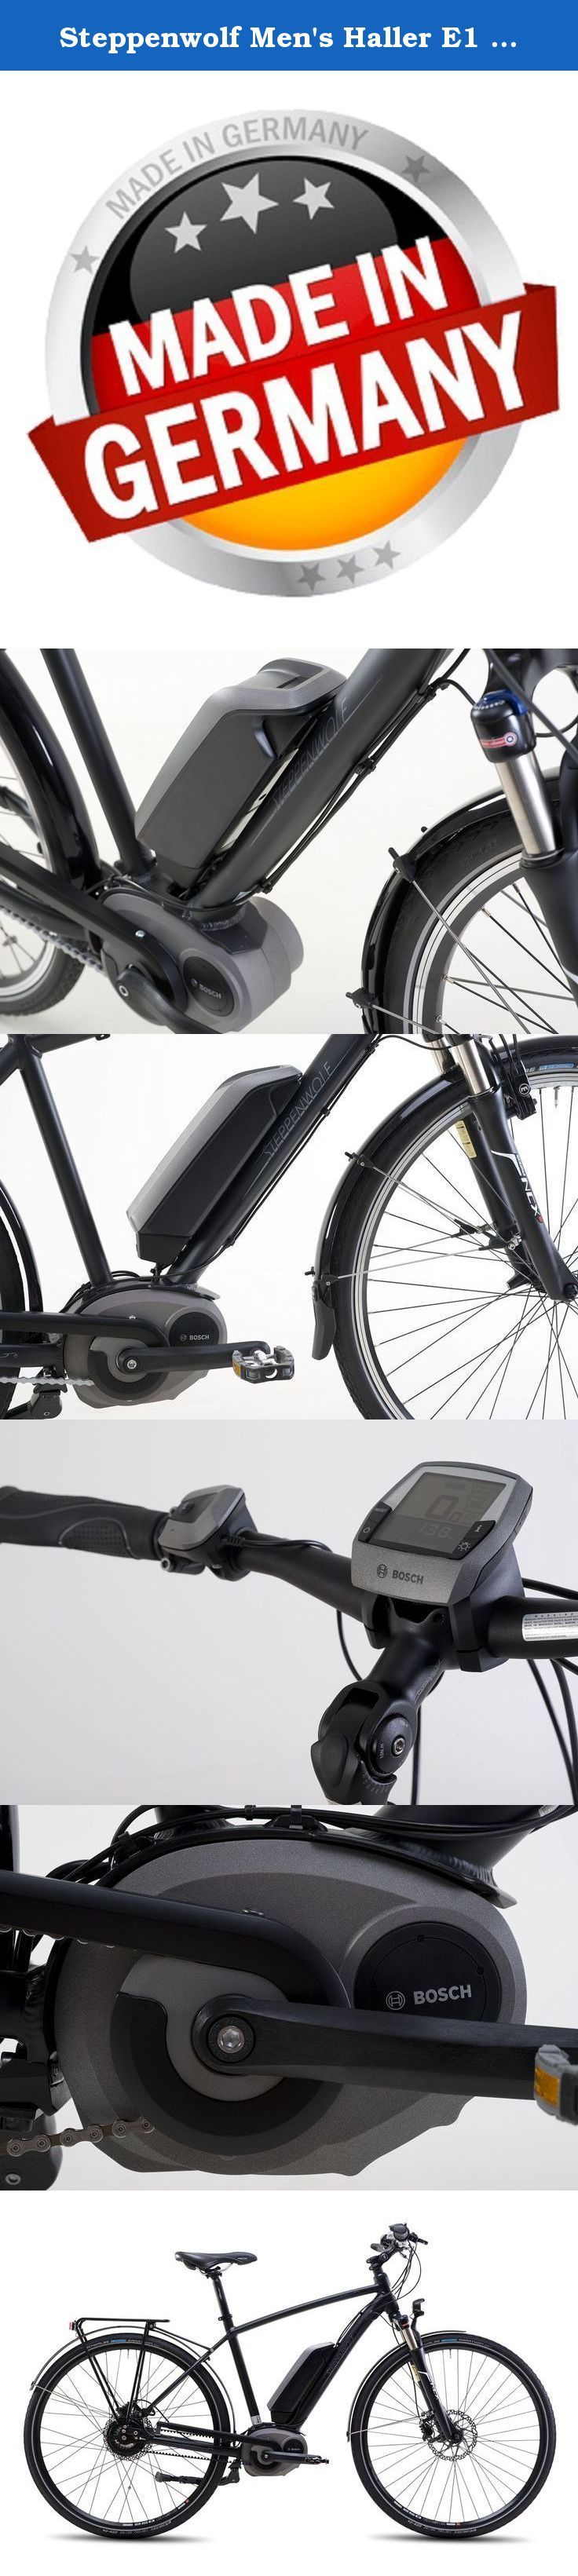 Steppenwolf Men's Haller E1 Electric Bicycle, Shadow Matte, 21 in. Simple and fast is the best description of the haller e! long distances are effortlessly overcome with its powerful engine. Bosch means abundant 400 watt battery, making our haller e one of the quality pioneers of emission-free motorized mobility. Also available with low-maintenance gates belt drive and wave SWE045-5401H-1 with low step. These bicycles come 99% assembled. Images reflect frame and color only, please review...